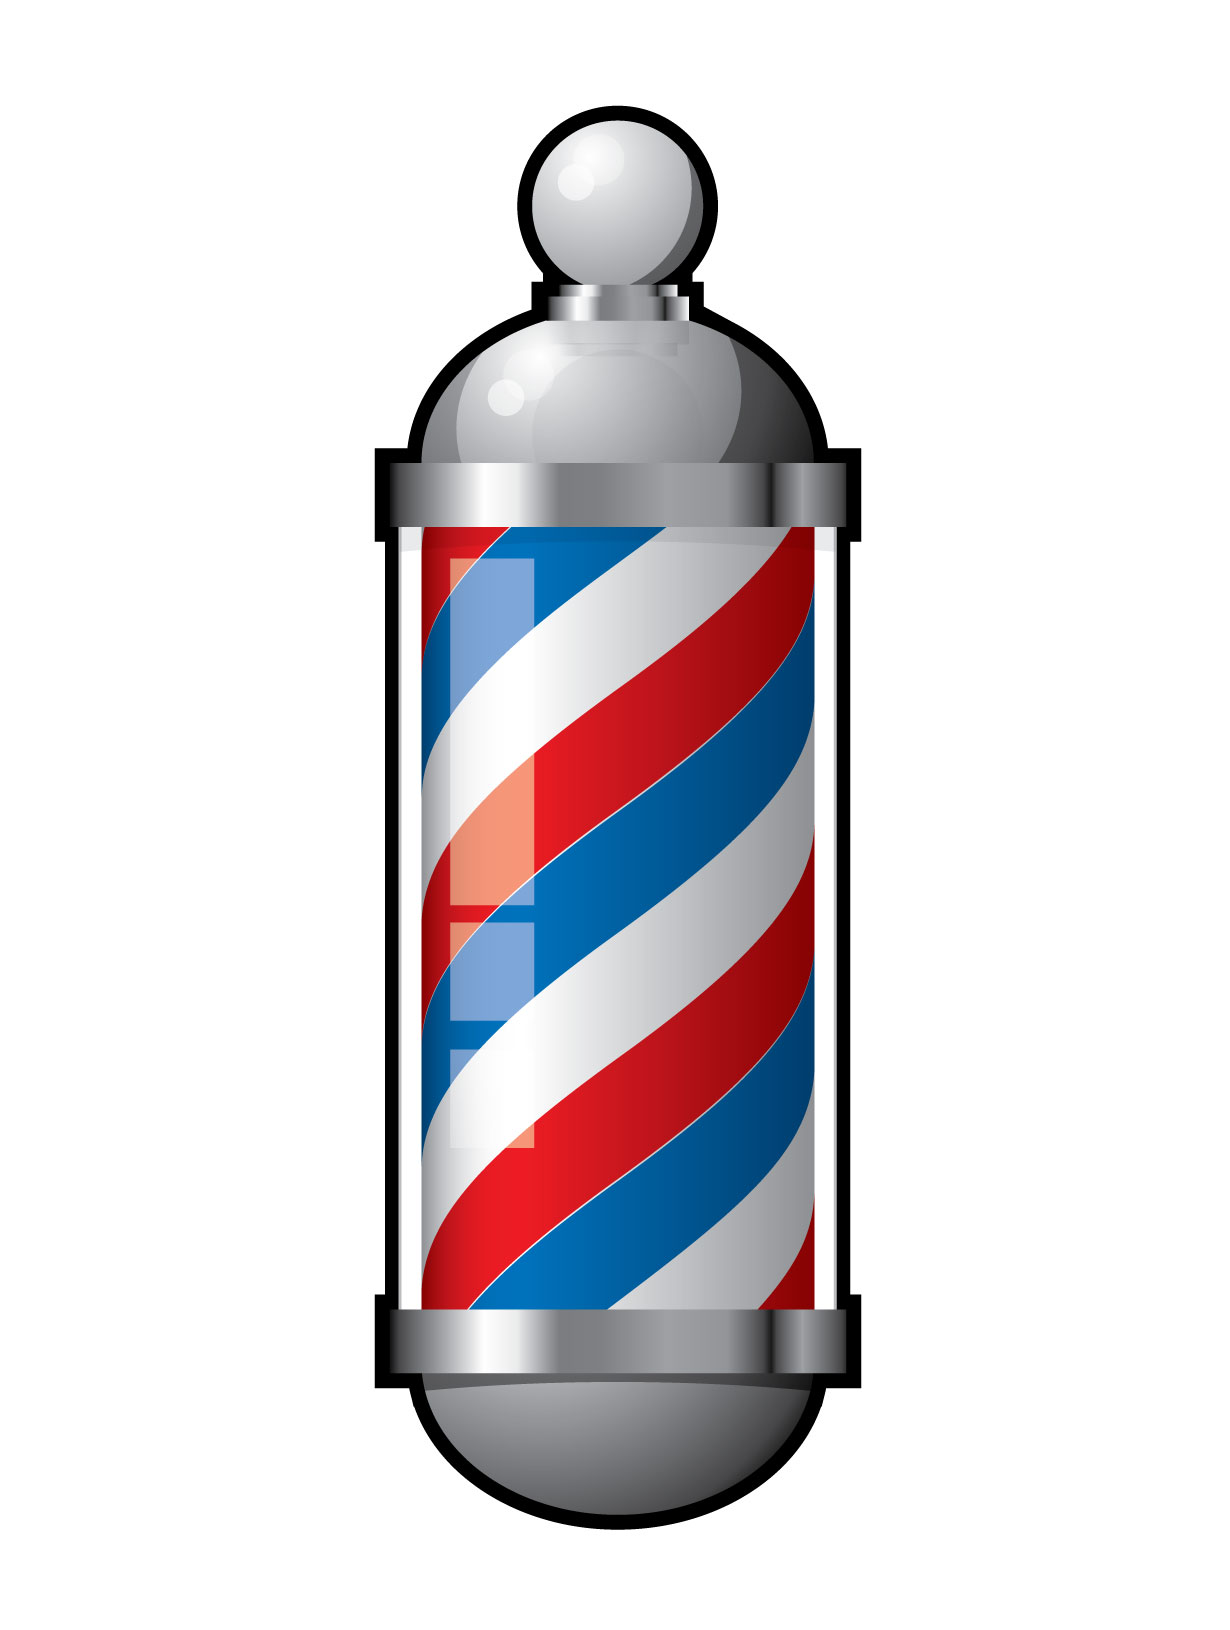 barber wallpaper HD